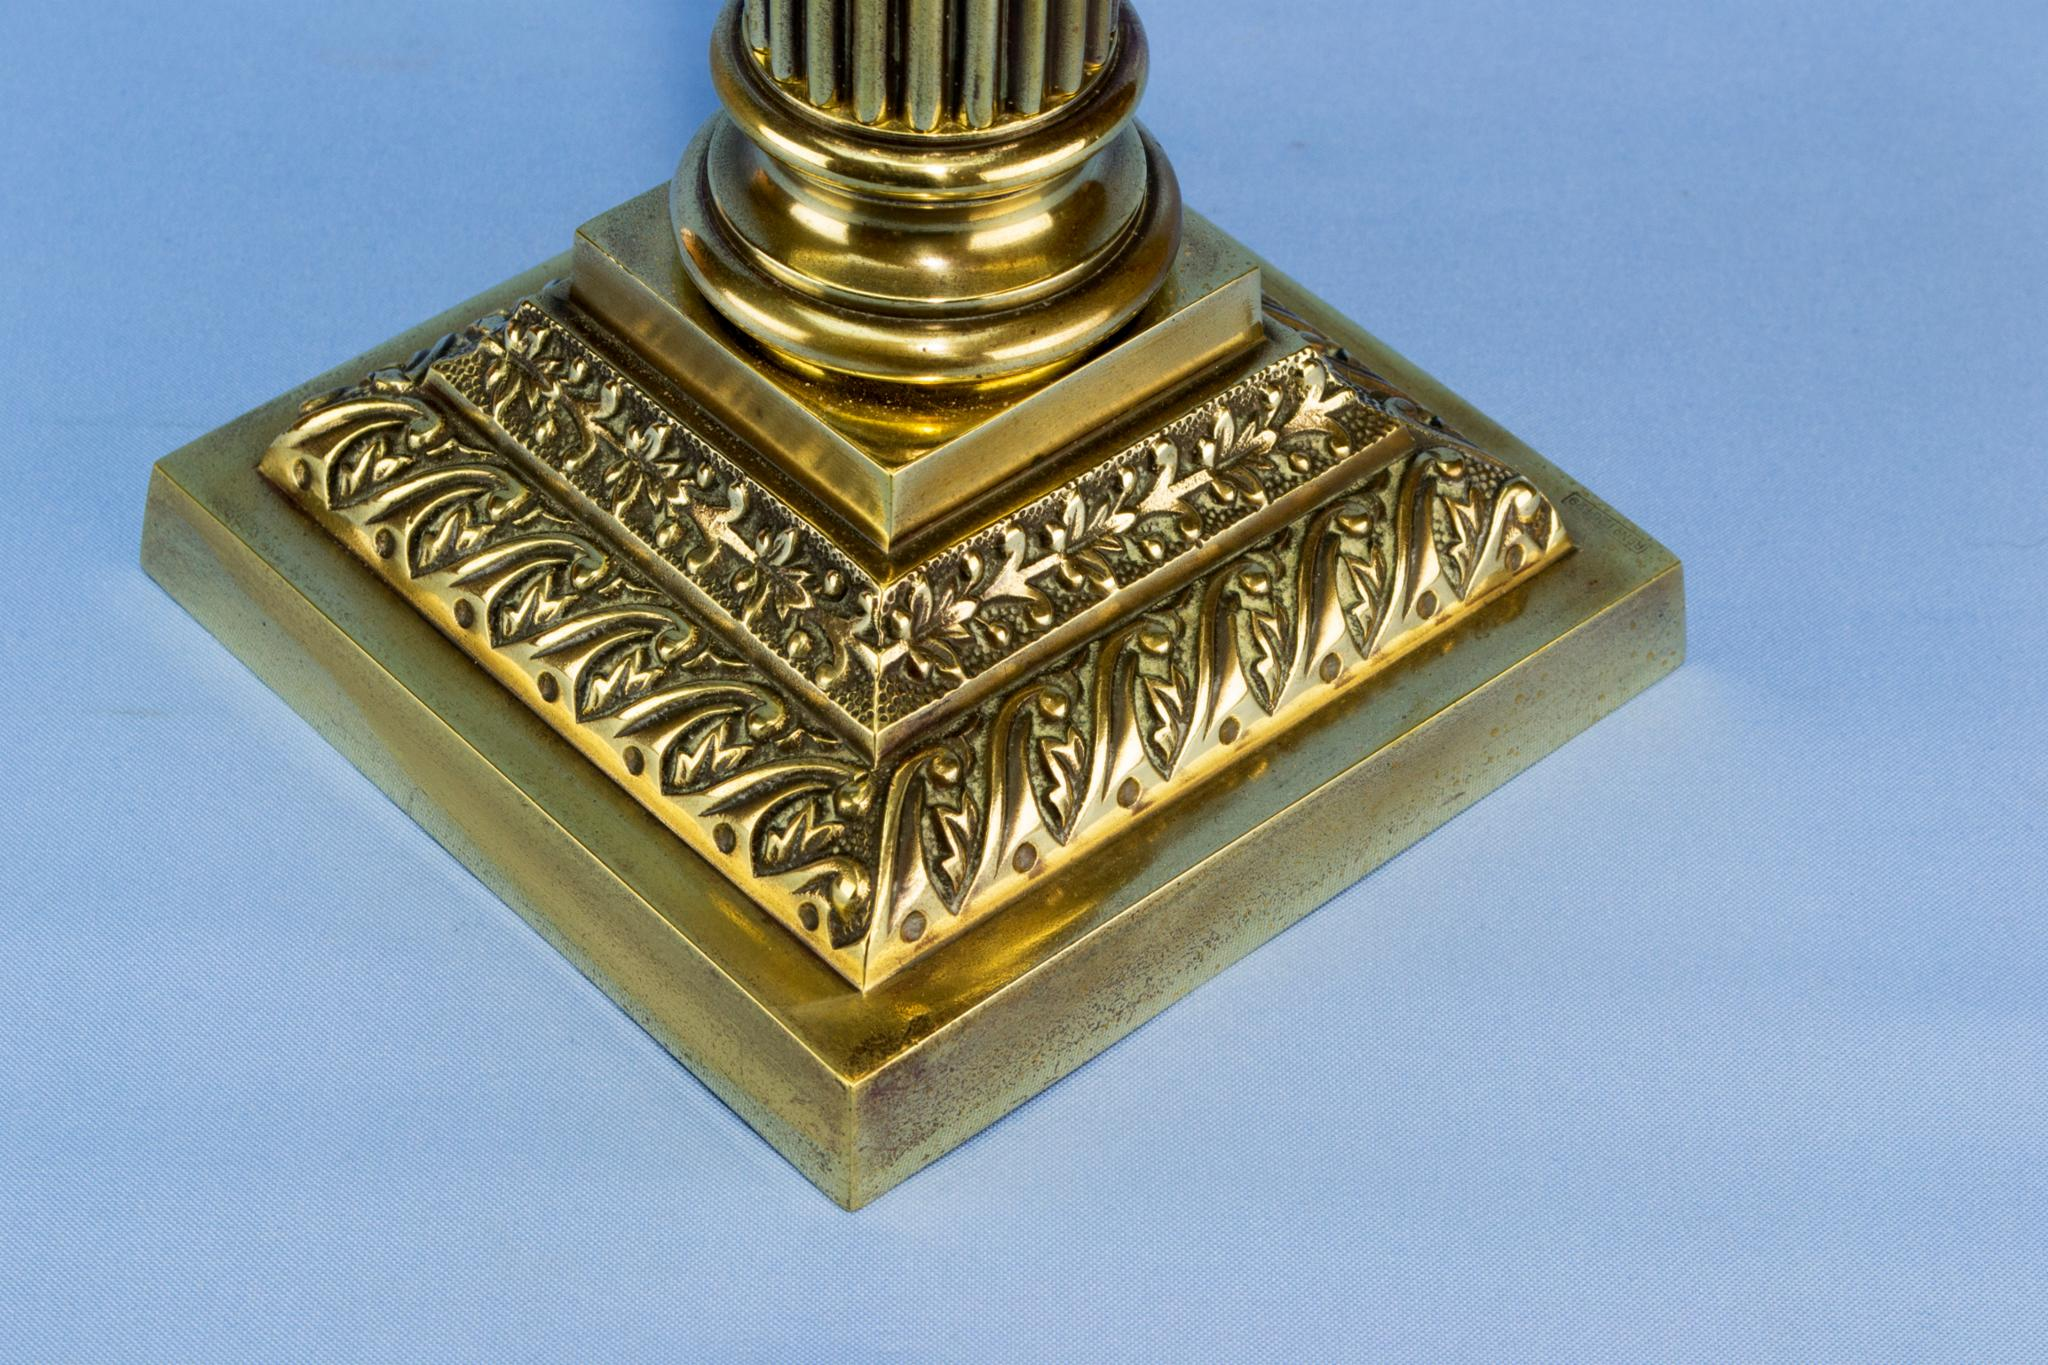 Tall brass oil lamp, English Victorian 1860s